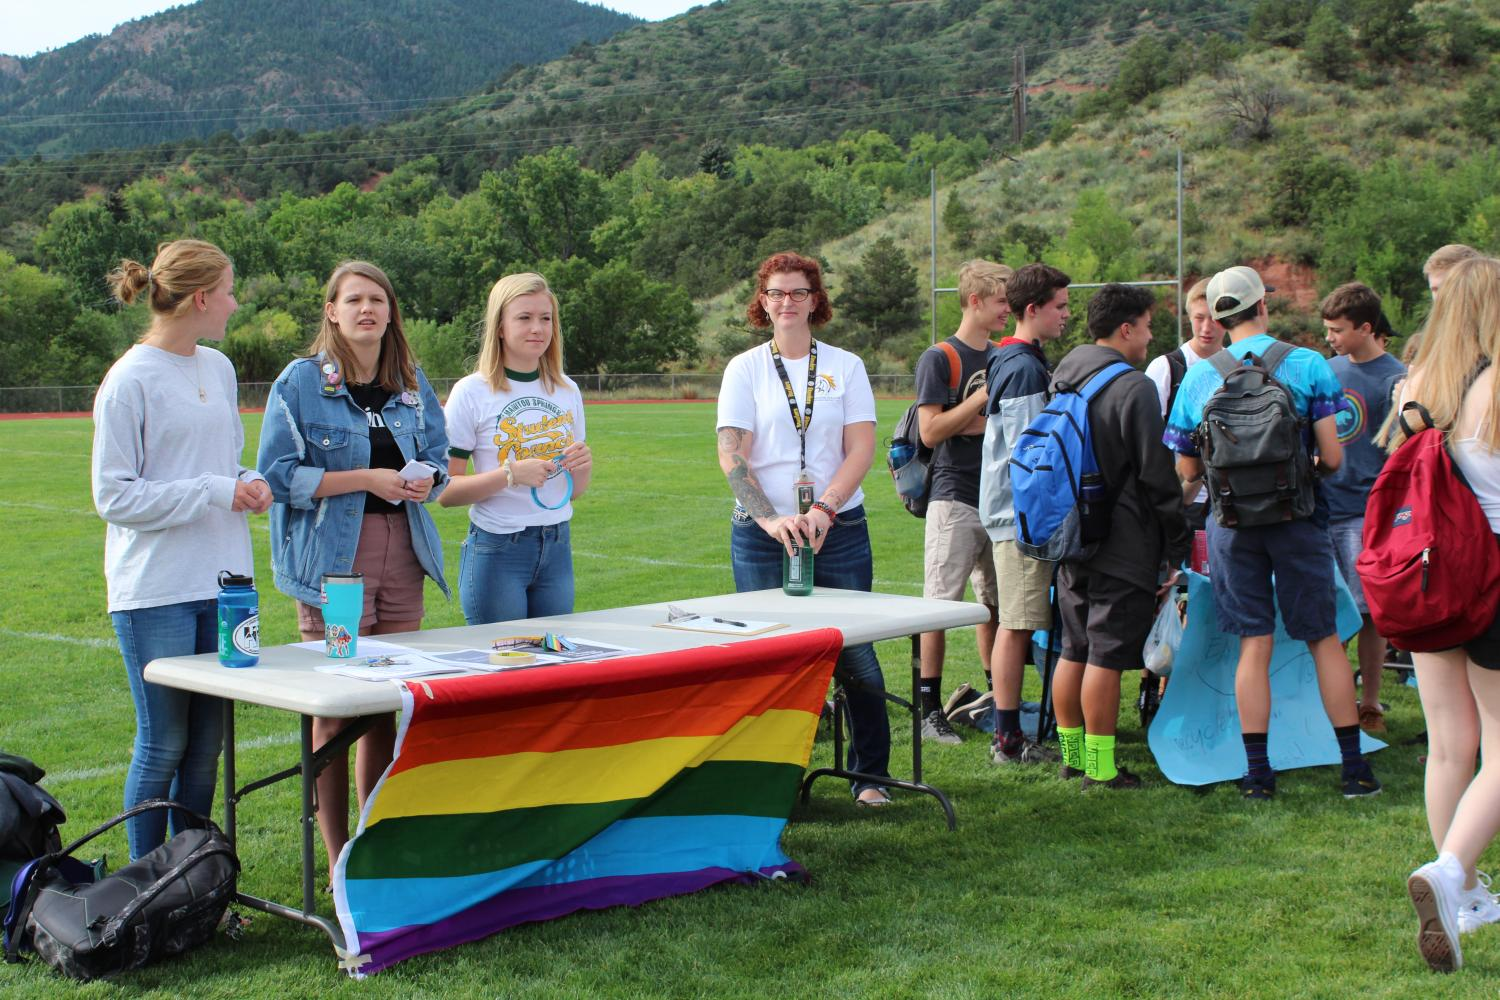 Kaitlyn Cashdollar (11), Aubrey Hall (12) and Jessica Moen (staff), inform people about the purpose and goal of the Gay Straight Transgender Alliance (GSTA). This year they are participating in events such as Urban Peak's Night Out to End Youth Homelessness and Day of Silence.